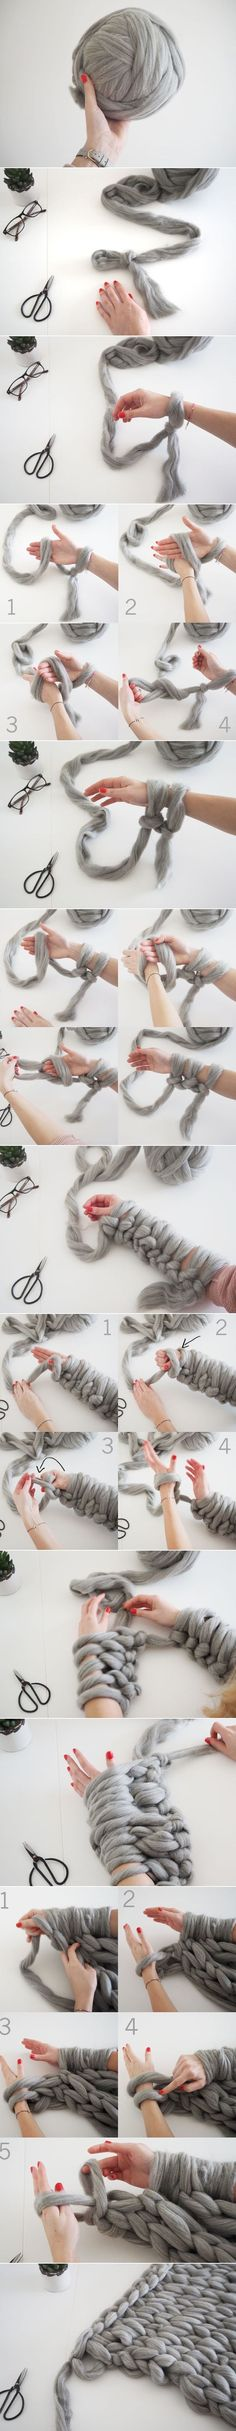 DIY - Knit a chunky blanket from wool roving | 17 Cozy DIY Projects to Keep You Warm This Winter mehr zum Selbermachen auf Interessante-dinge.de (Diy Bedroom Crafts)